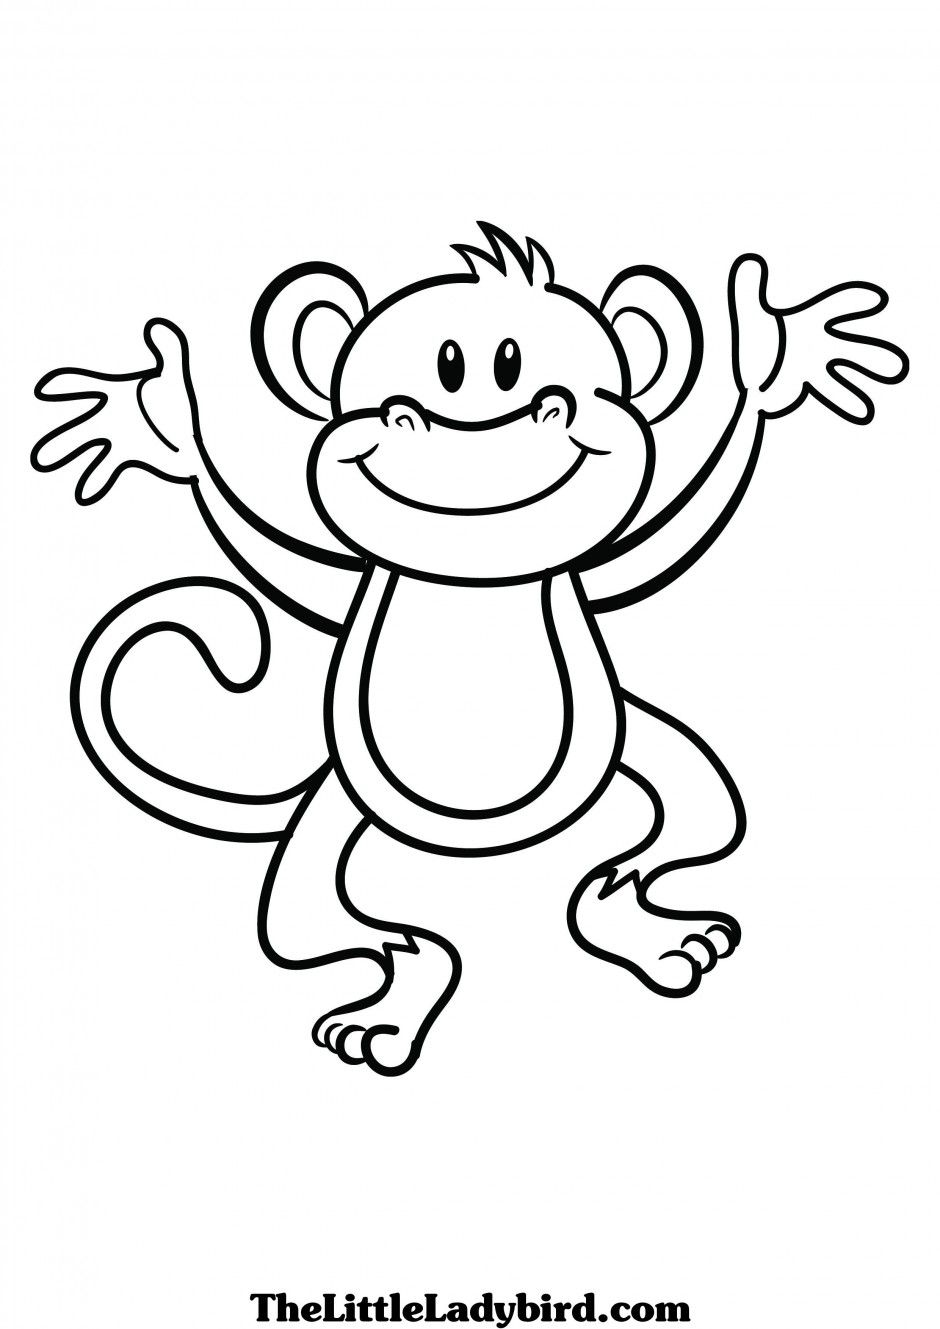 940x1329 Cute Monkey Clip Art Black And White Monkey Coloring Pages Monkey